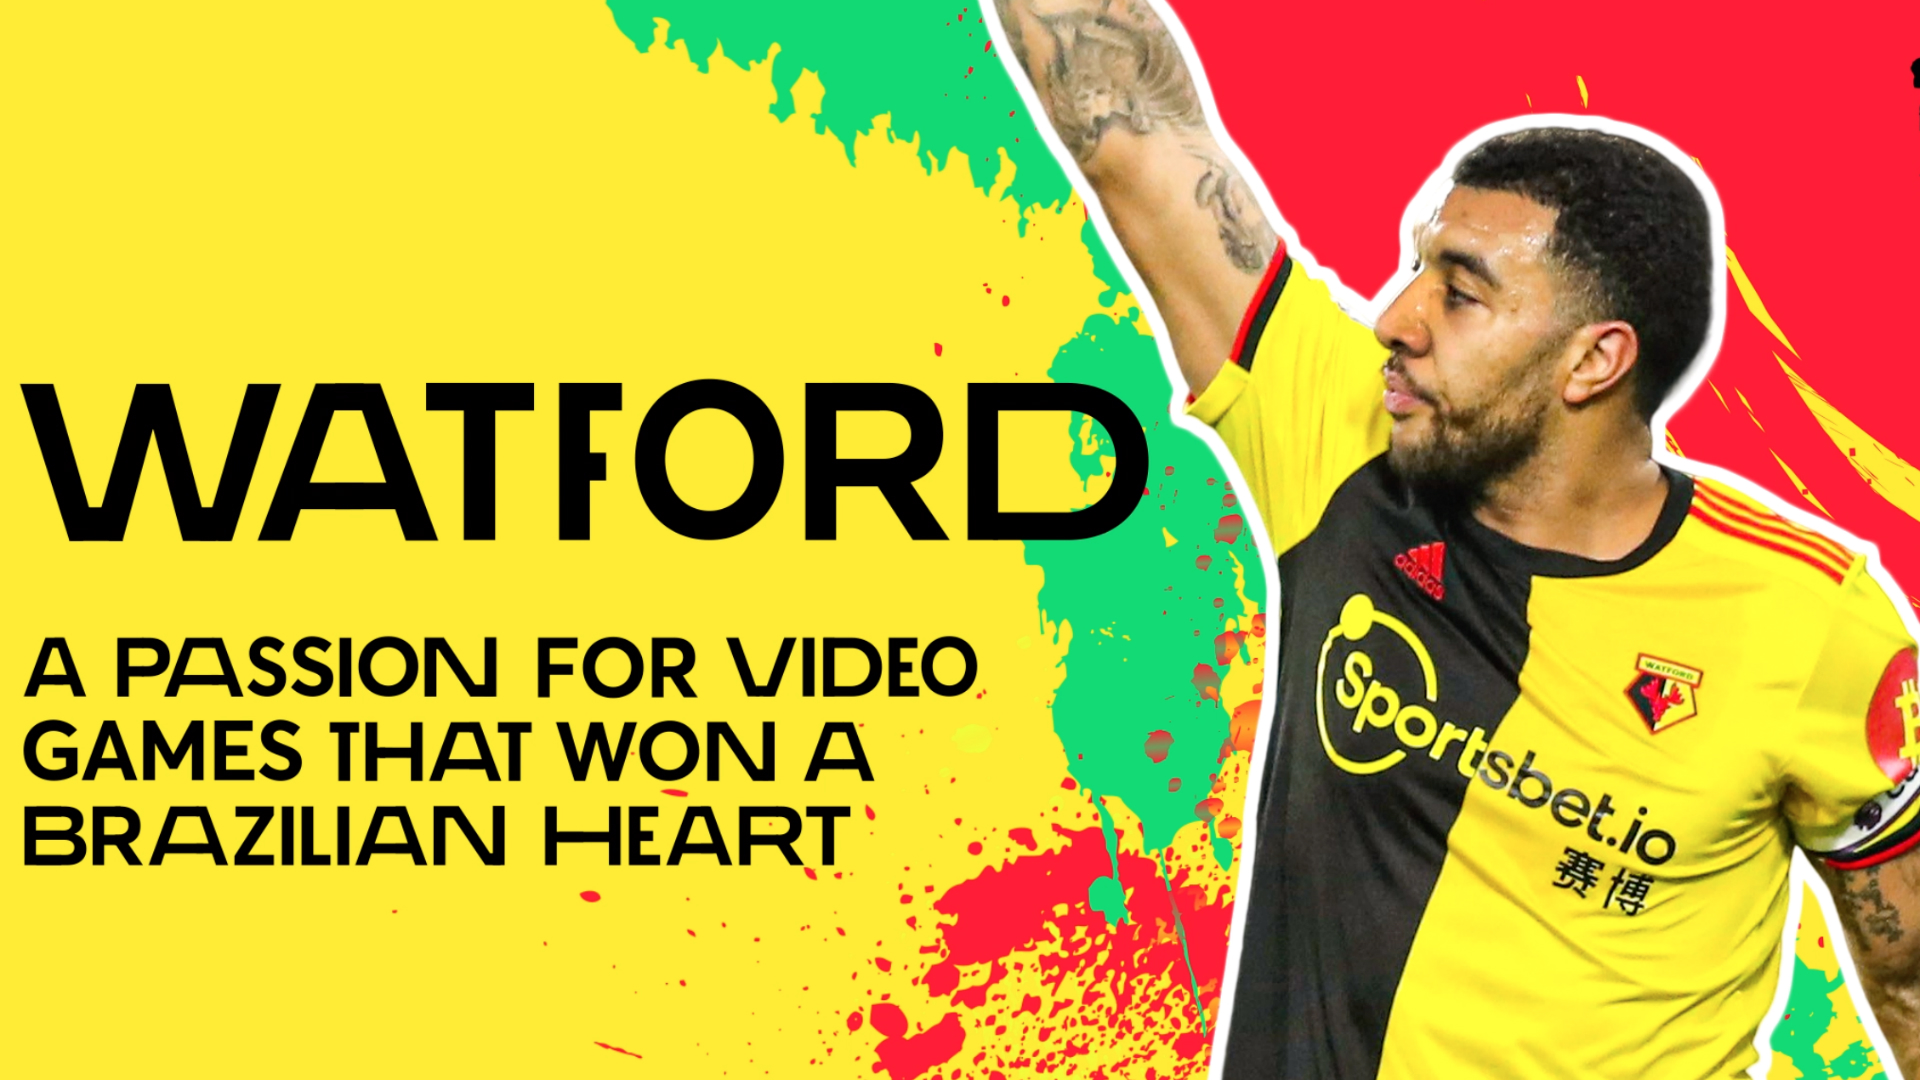 How a passion for gaming won Watford a Brazilian heart